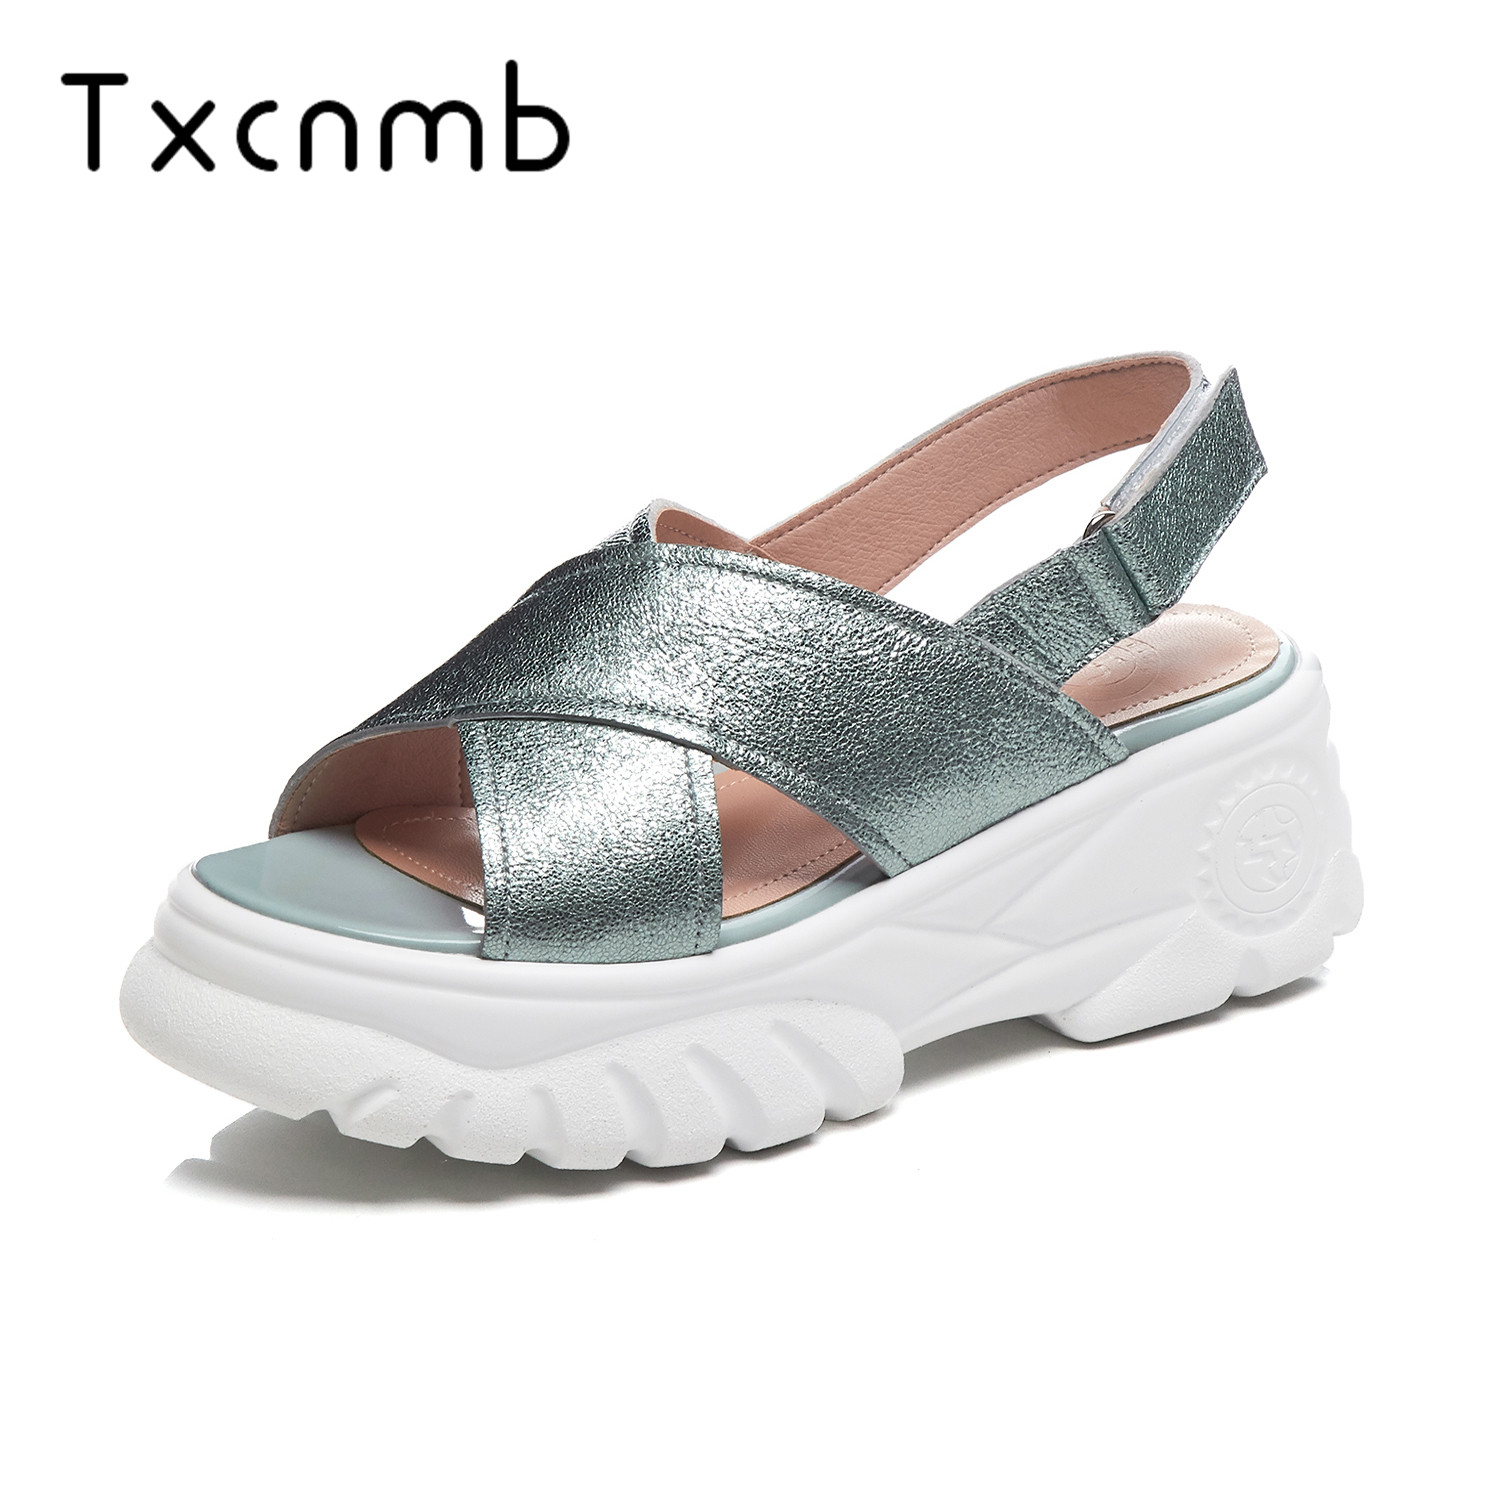 TXCNMB shoes woman 2019 summer Genuine leather sandals women shoes simple solid colors platform sandals casual